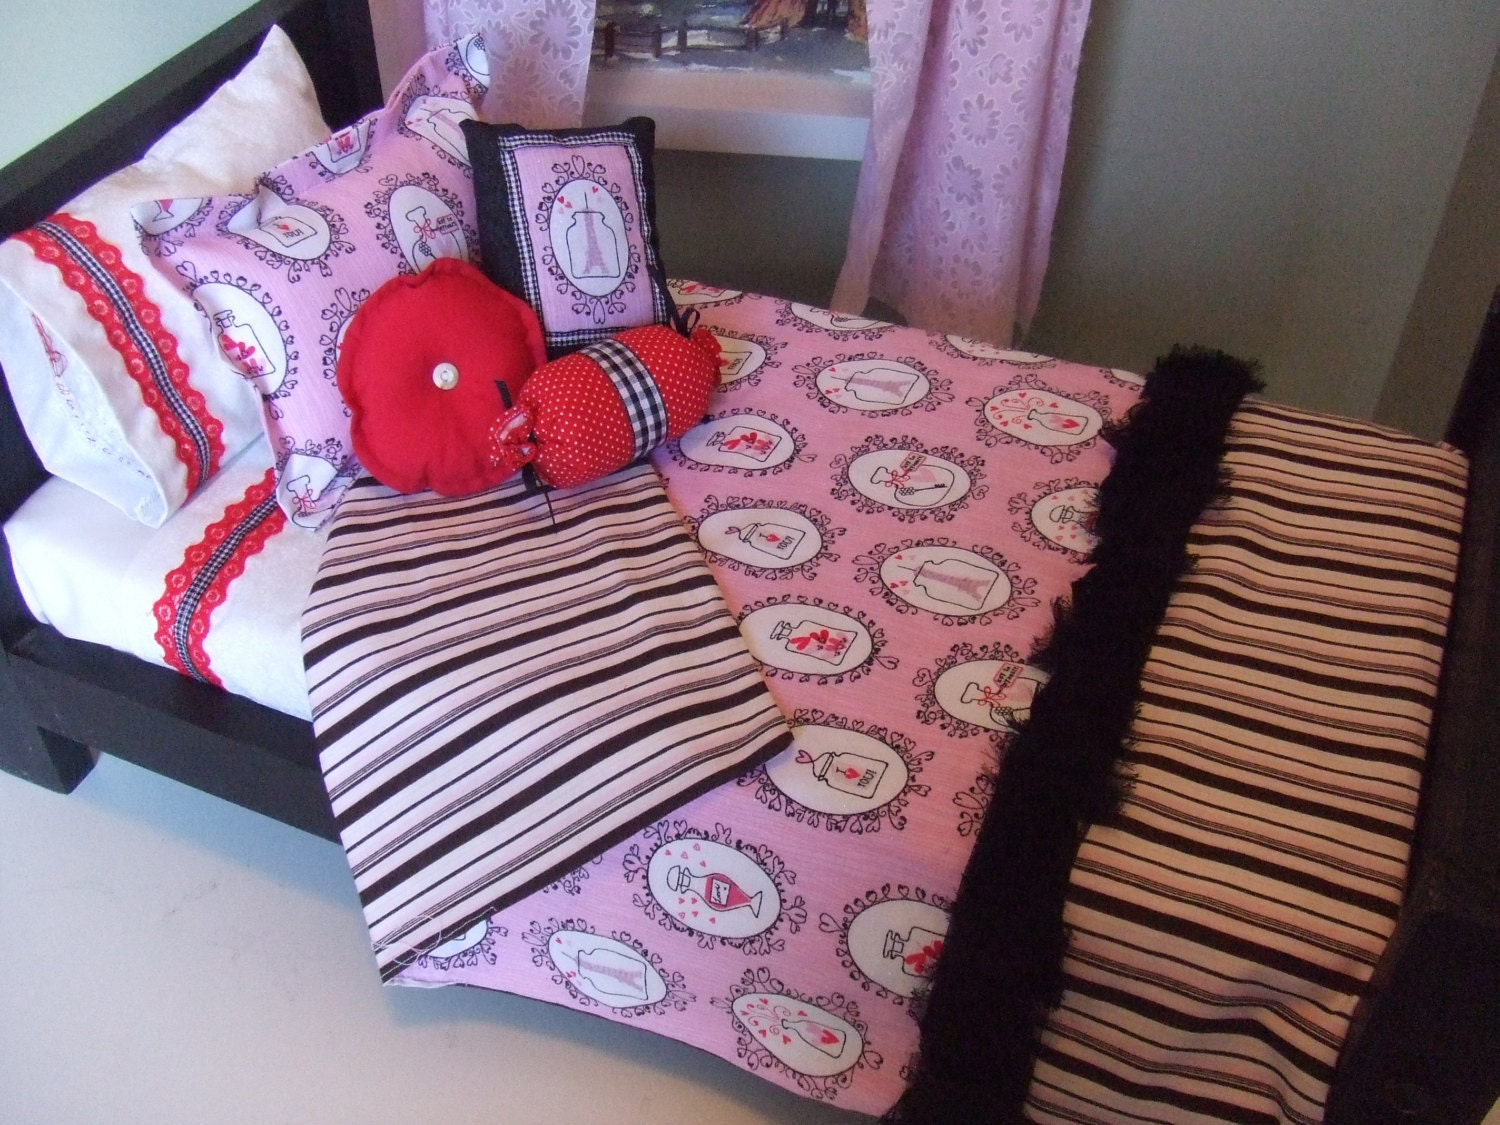 How To Make A Doll Decorative Pillow : Unavailable Listing on Etsy